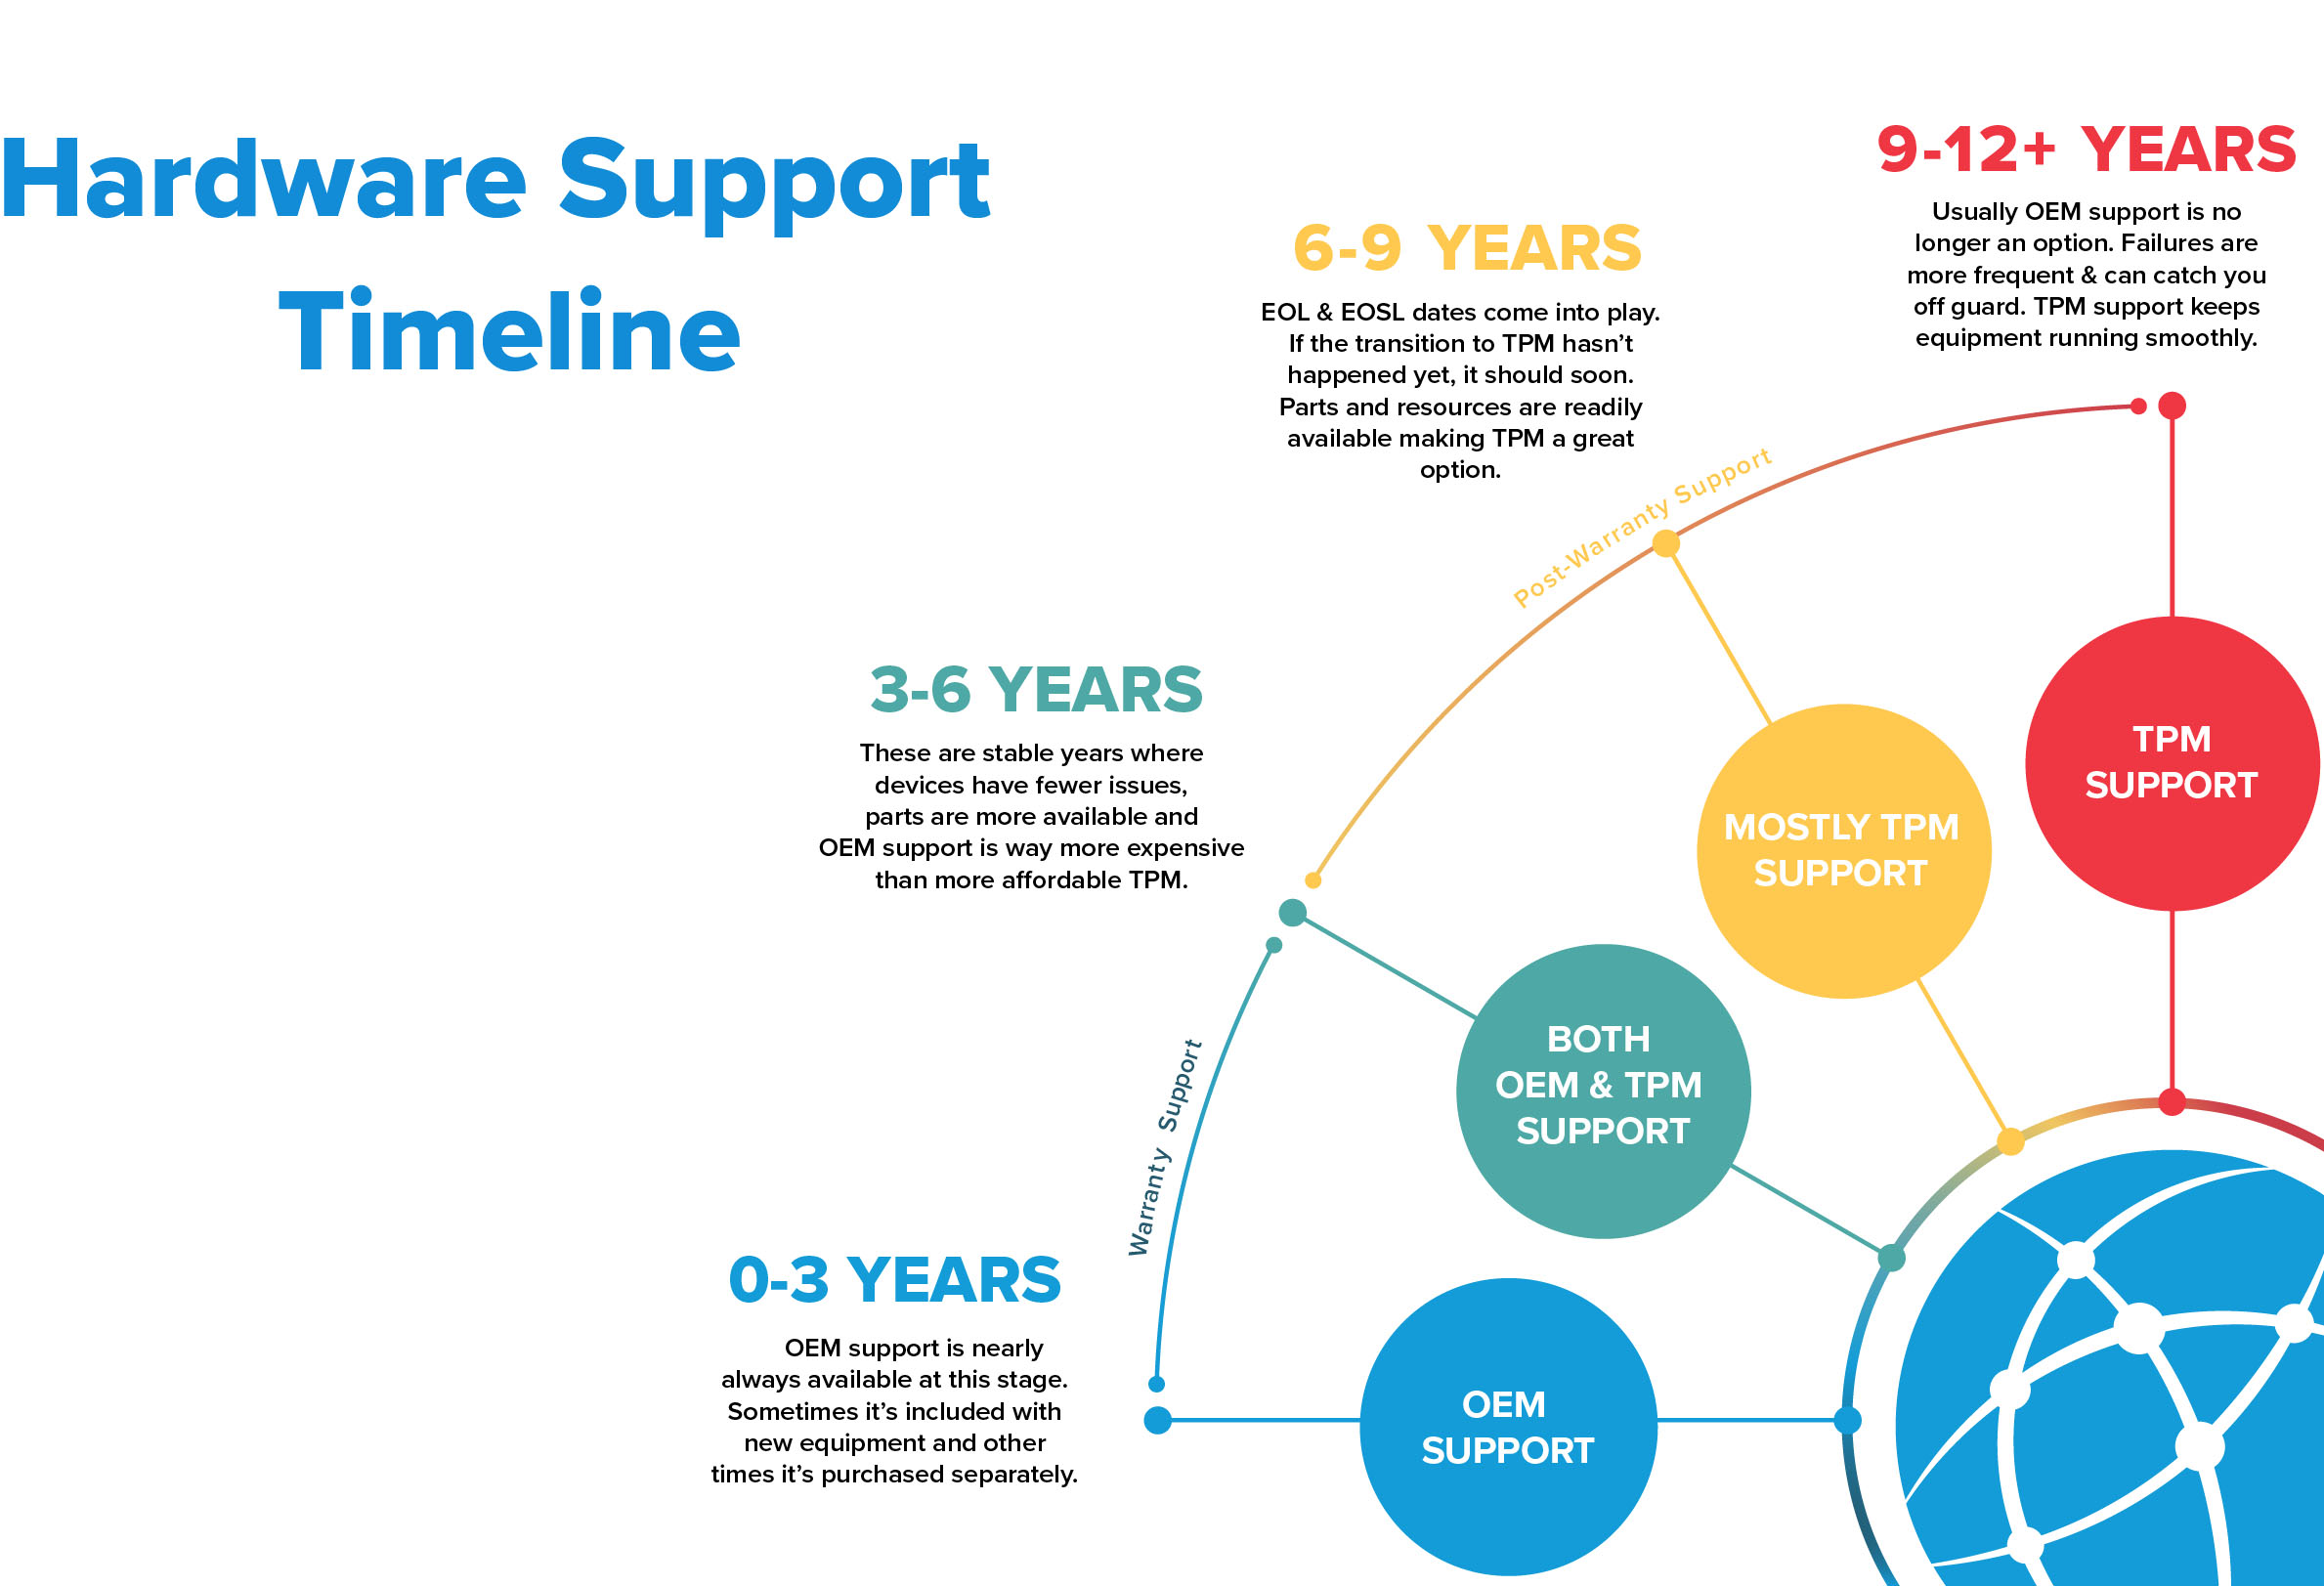 timeline from OEM warranty support to post warranty TPM support